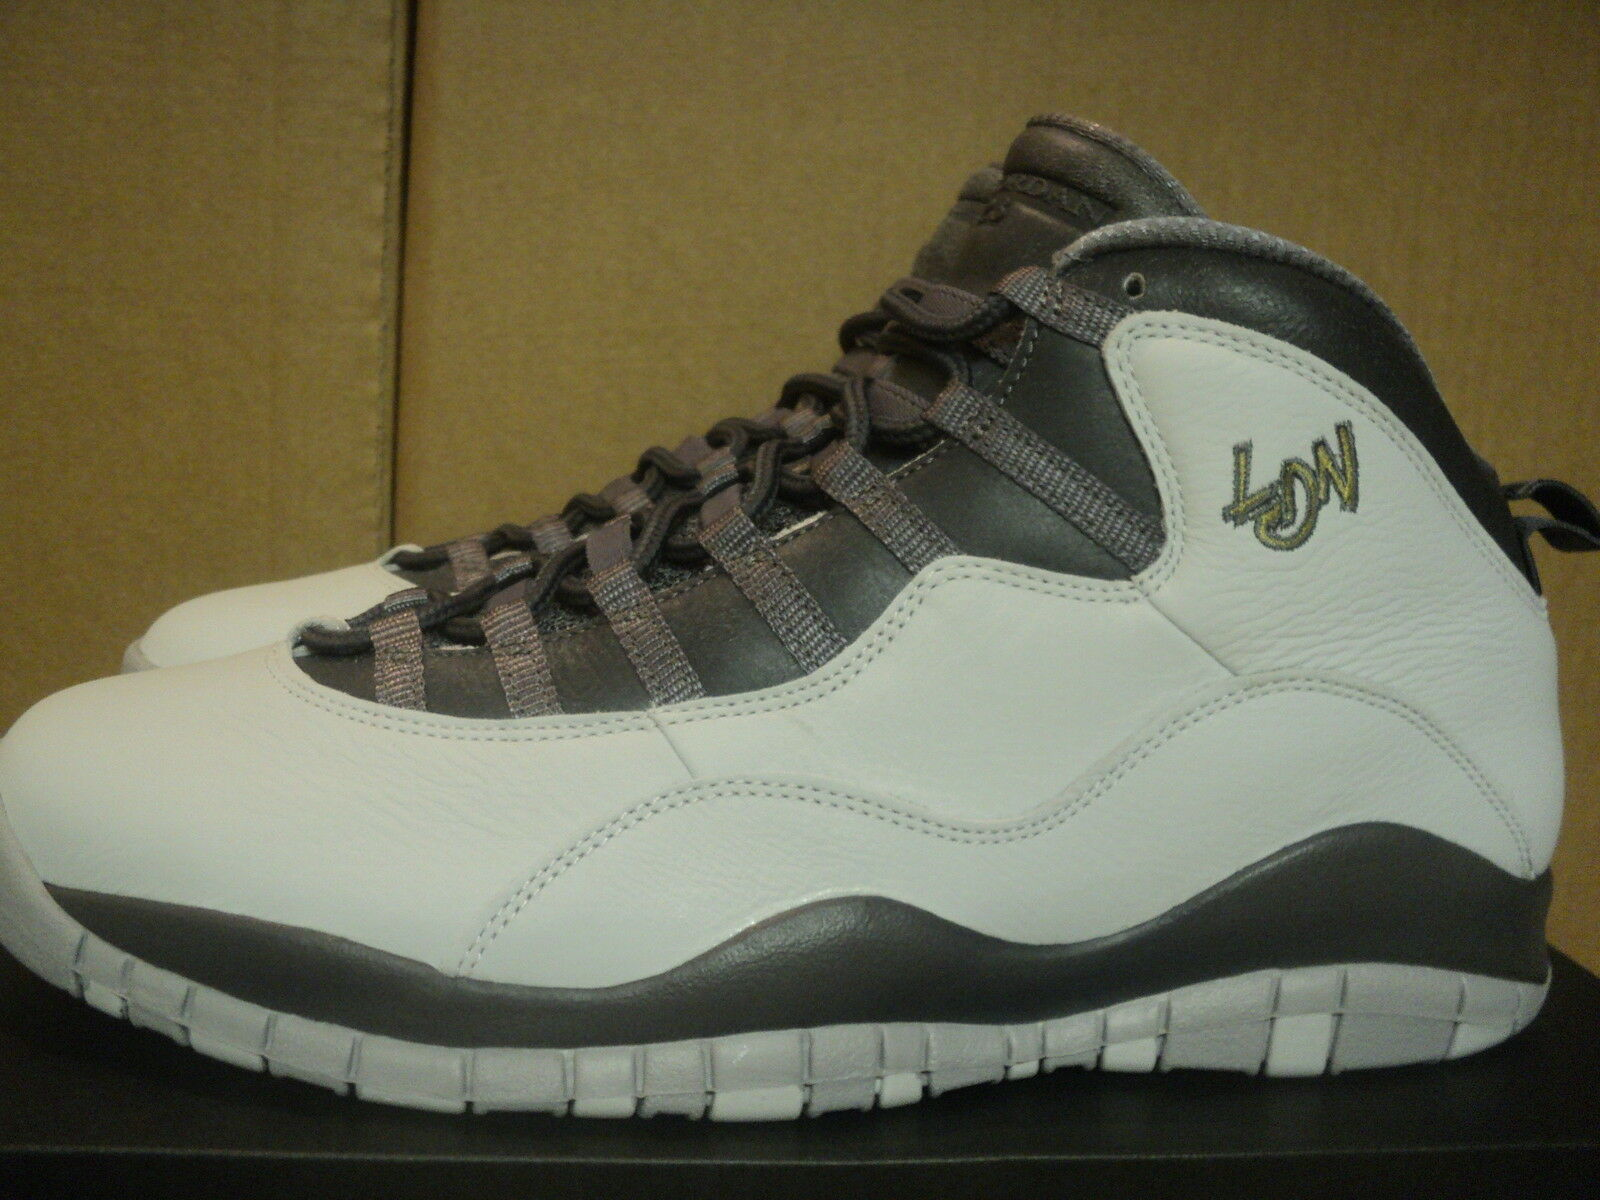 NIKE AIR JORDAN 10 RETRO LONDON SIZES = US 12.5 BRAND NEW IN BOX